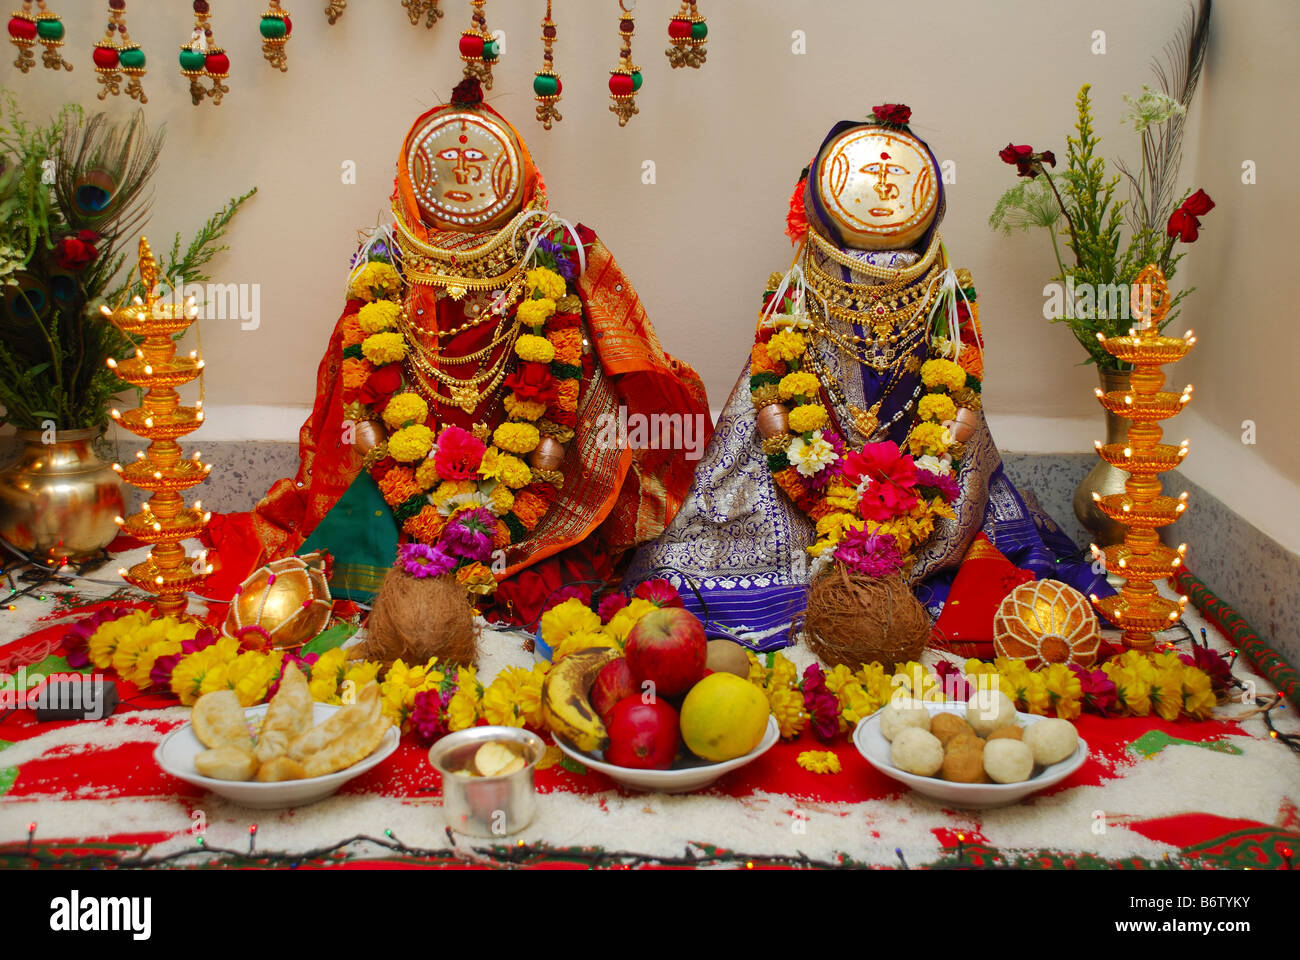 Gouri Or Gauri Hindu Deity Goddess Durga Decoration Pune Stock Photo 21446879 Alamy